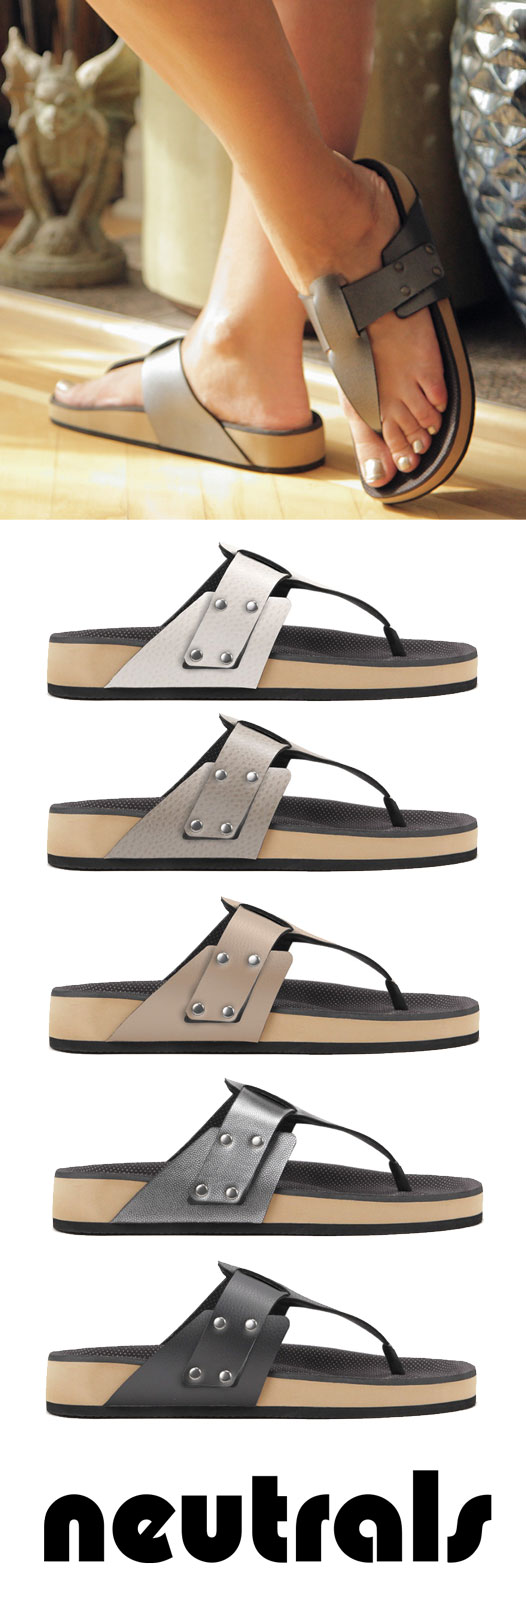 Custom Fit sandals. Arch support, eco